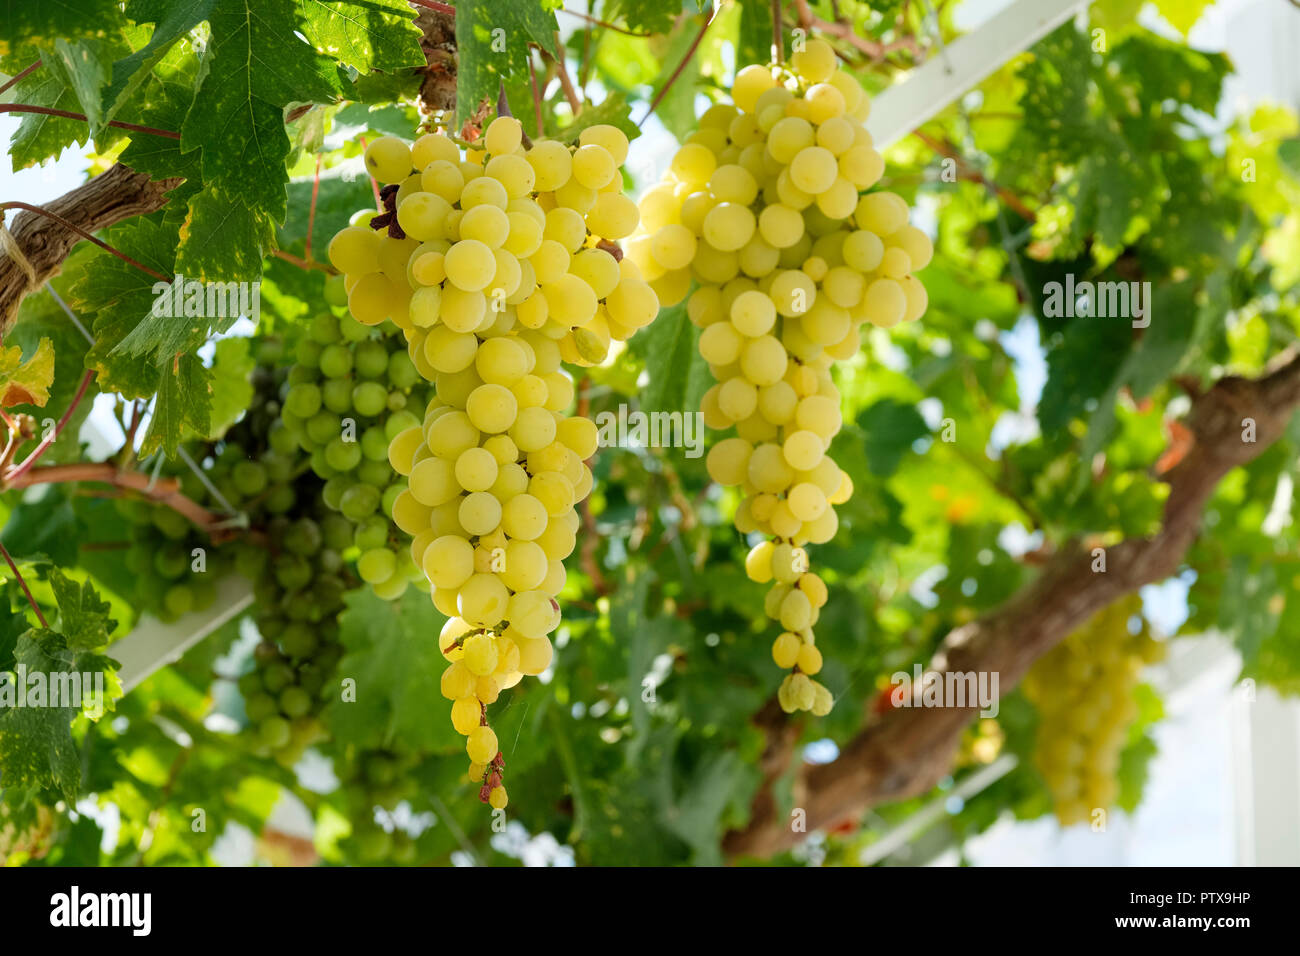 Green table grapes (Vitis vinifera) hanging from the vine in a greenhouse, Sussex, England, UK Stock Photo